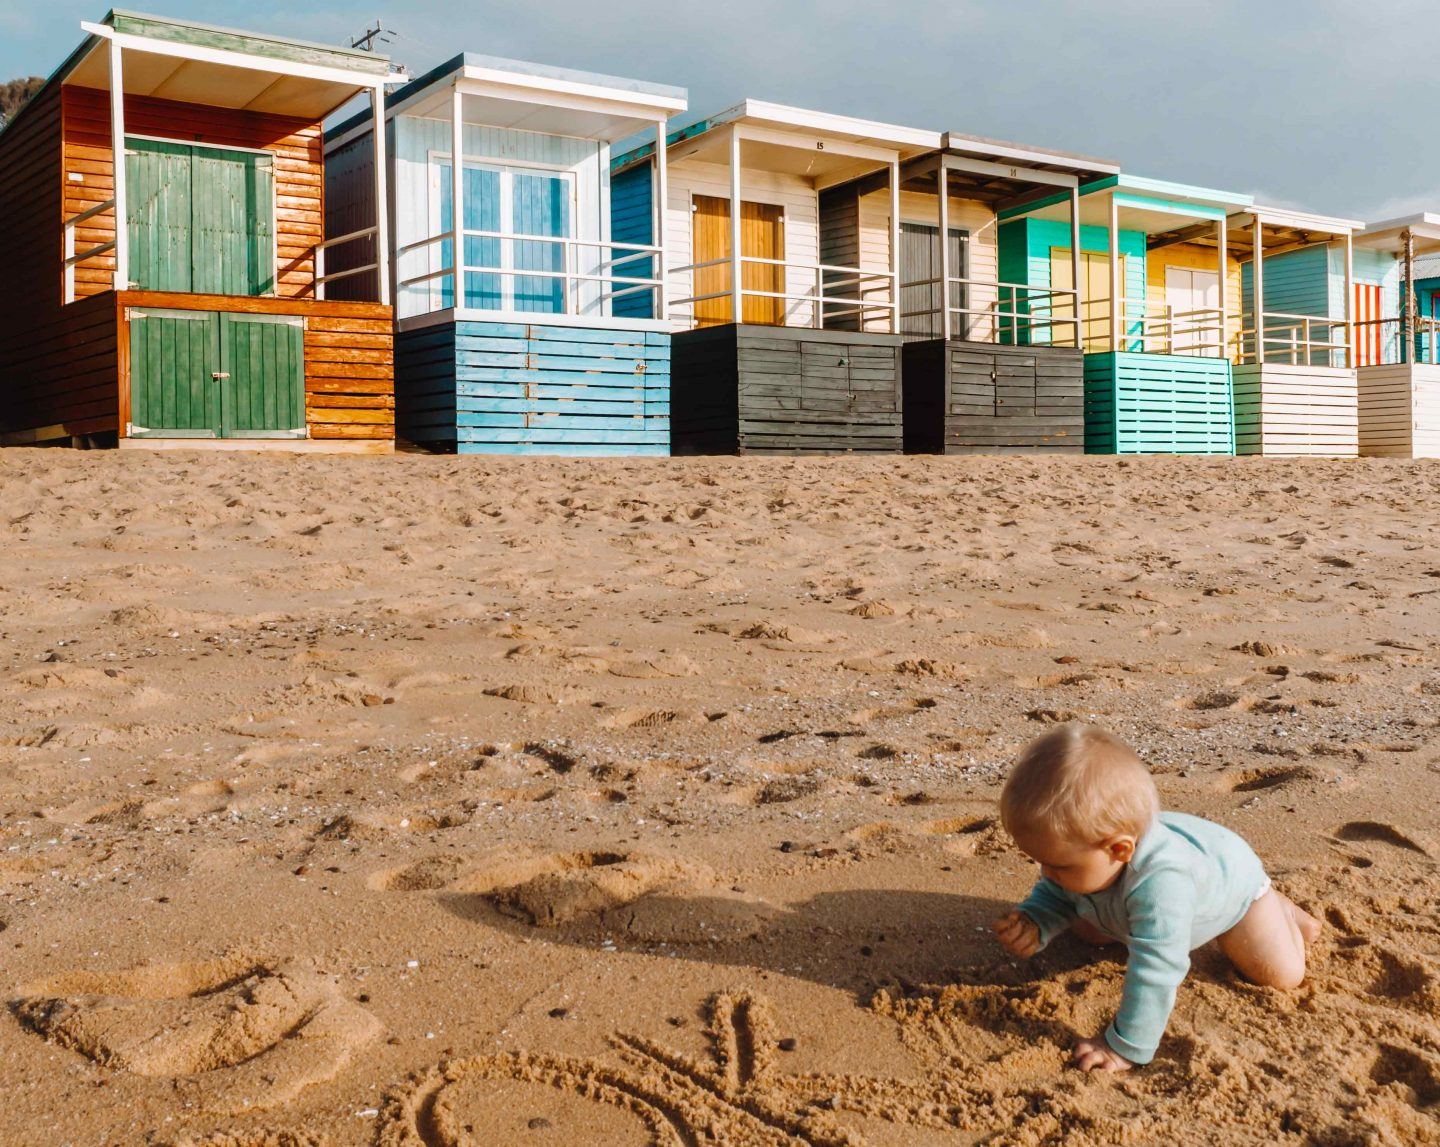 Mount Martha Beach Boxes - Live Life and Roam - Instagrammable Spots on the Mornington Peninsula